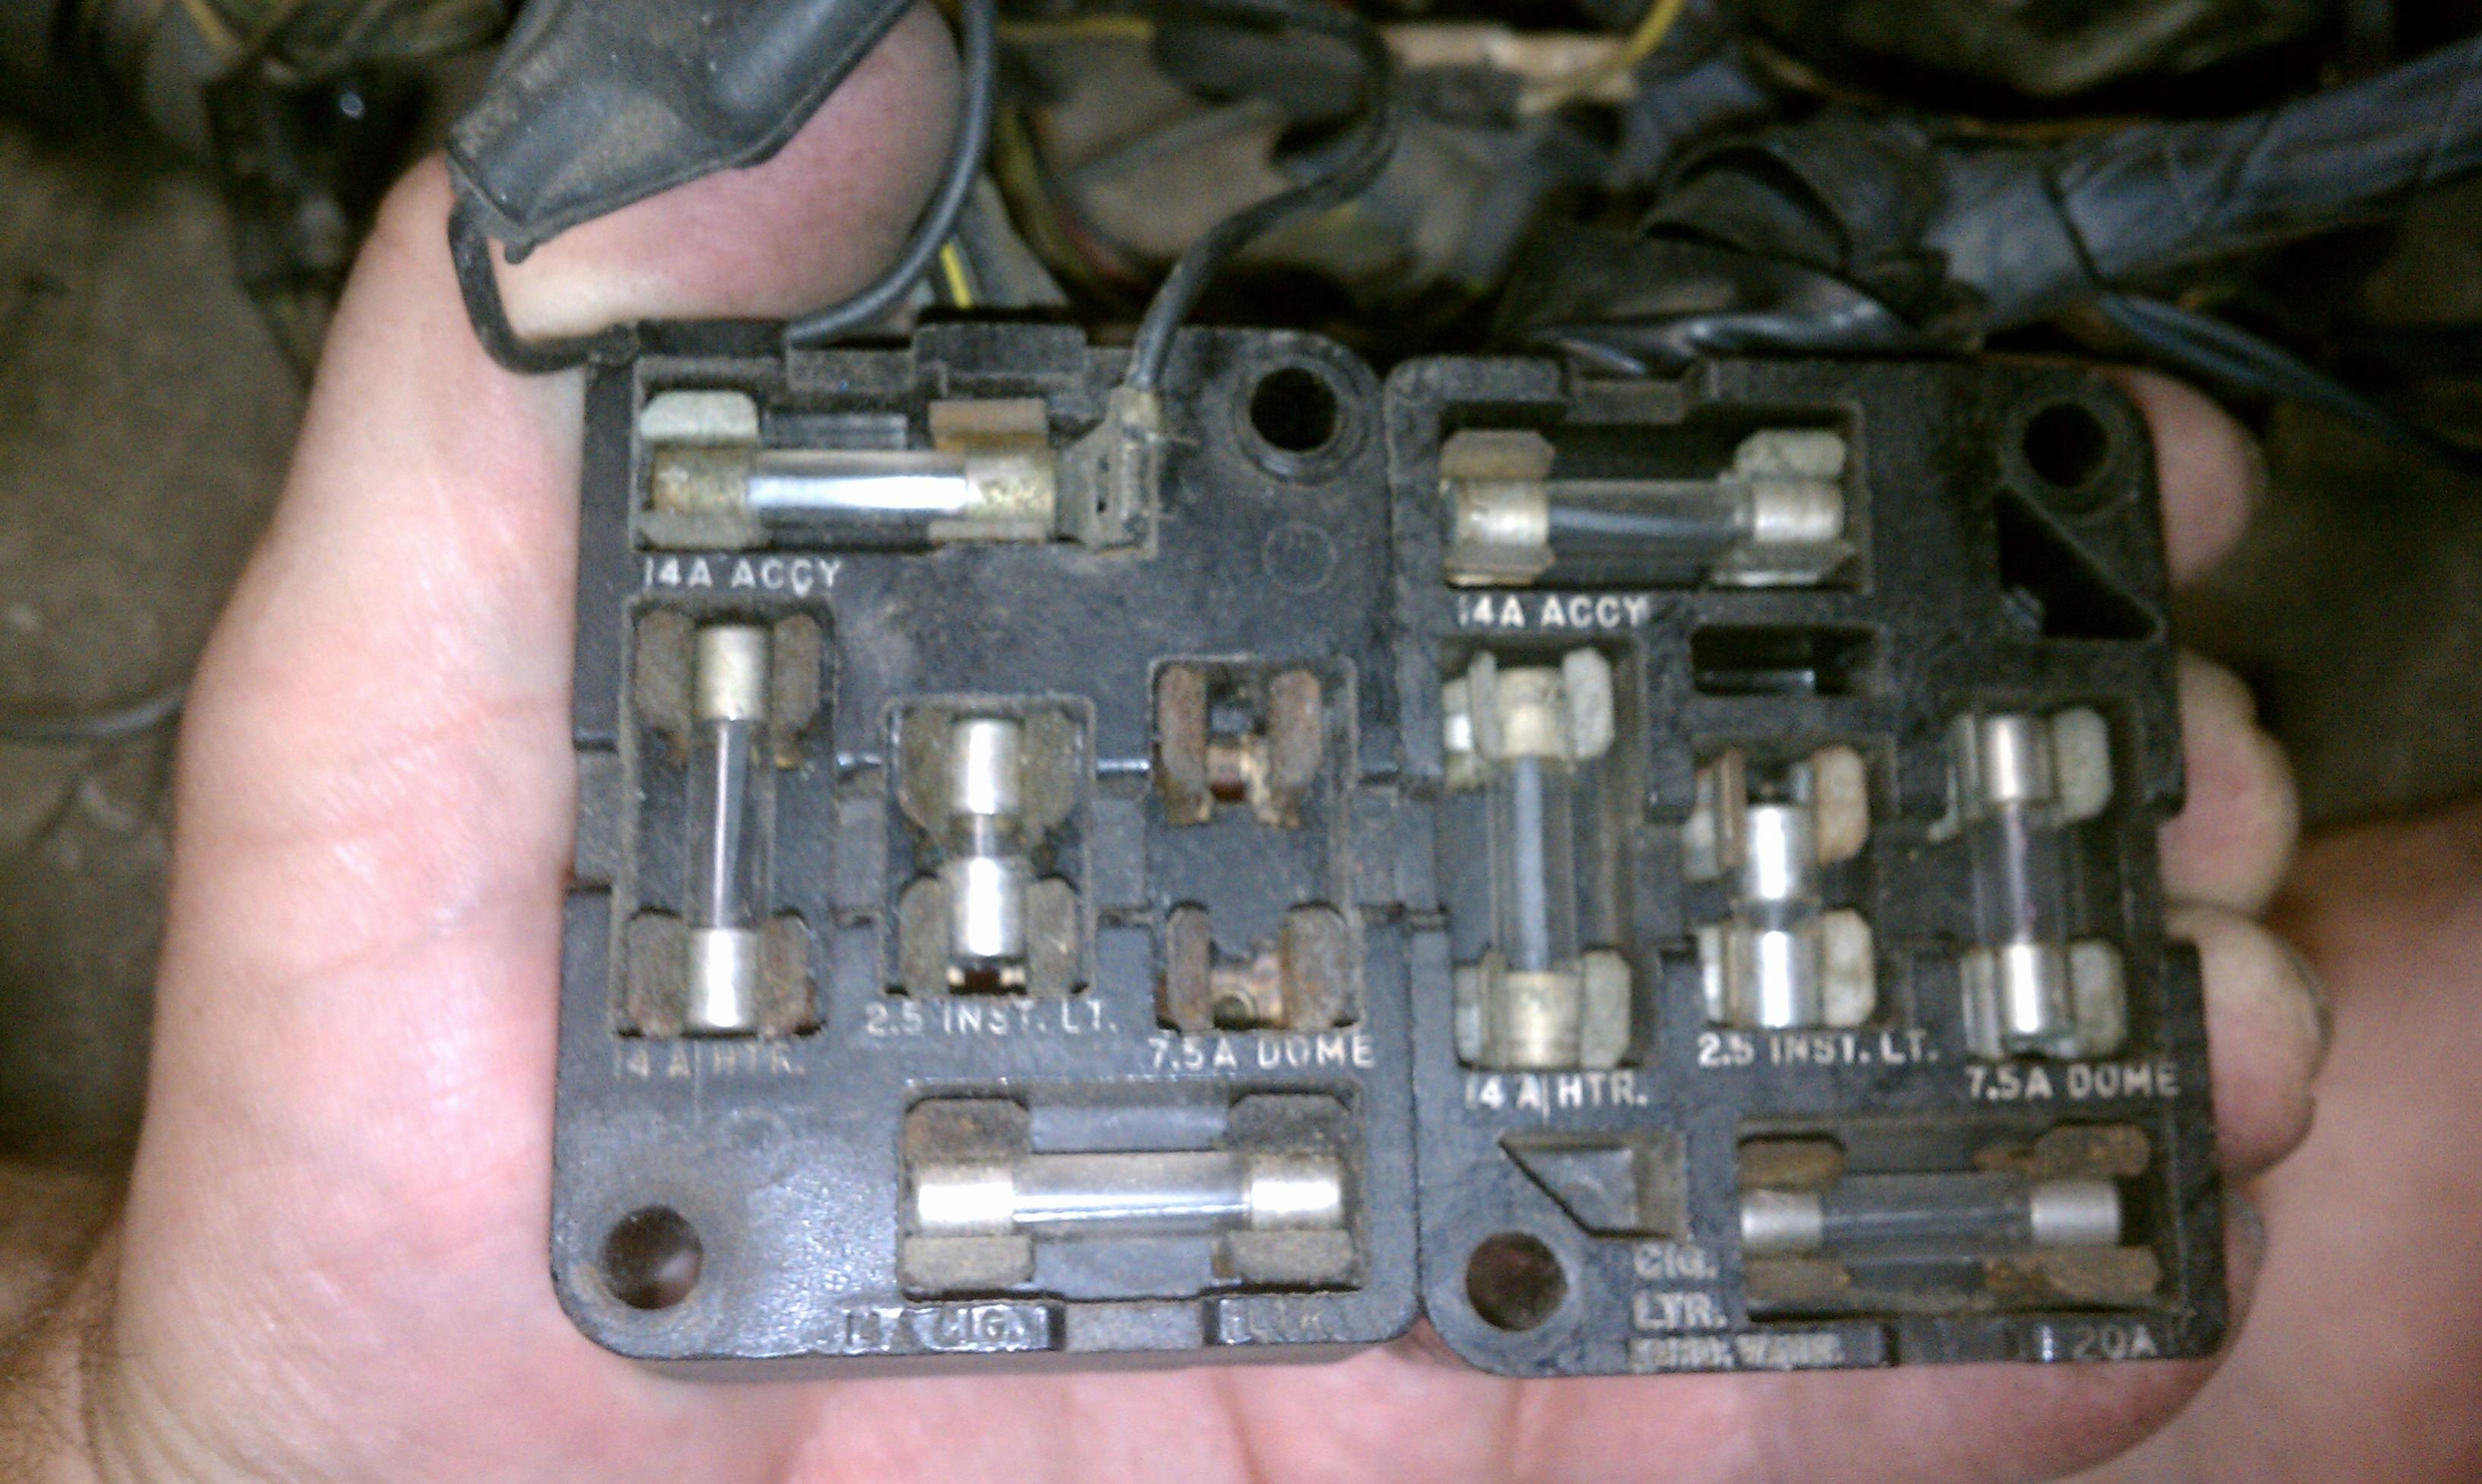 [SCHEMATICS_48YU]  TL_2101] 1966 Ford Mustang Fuse Box Wiring Diagram   1966 Mustang Fuse Box      Spoat Over Epete Elae Jebrp Mohammedshrine Librar Wiring 101